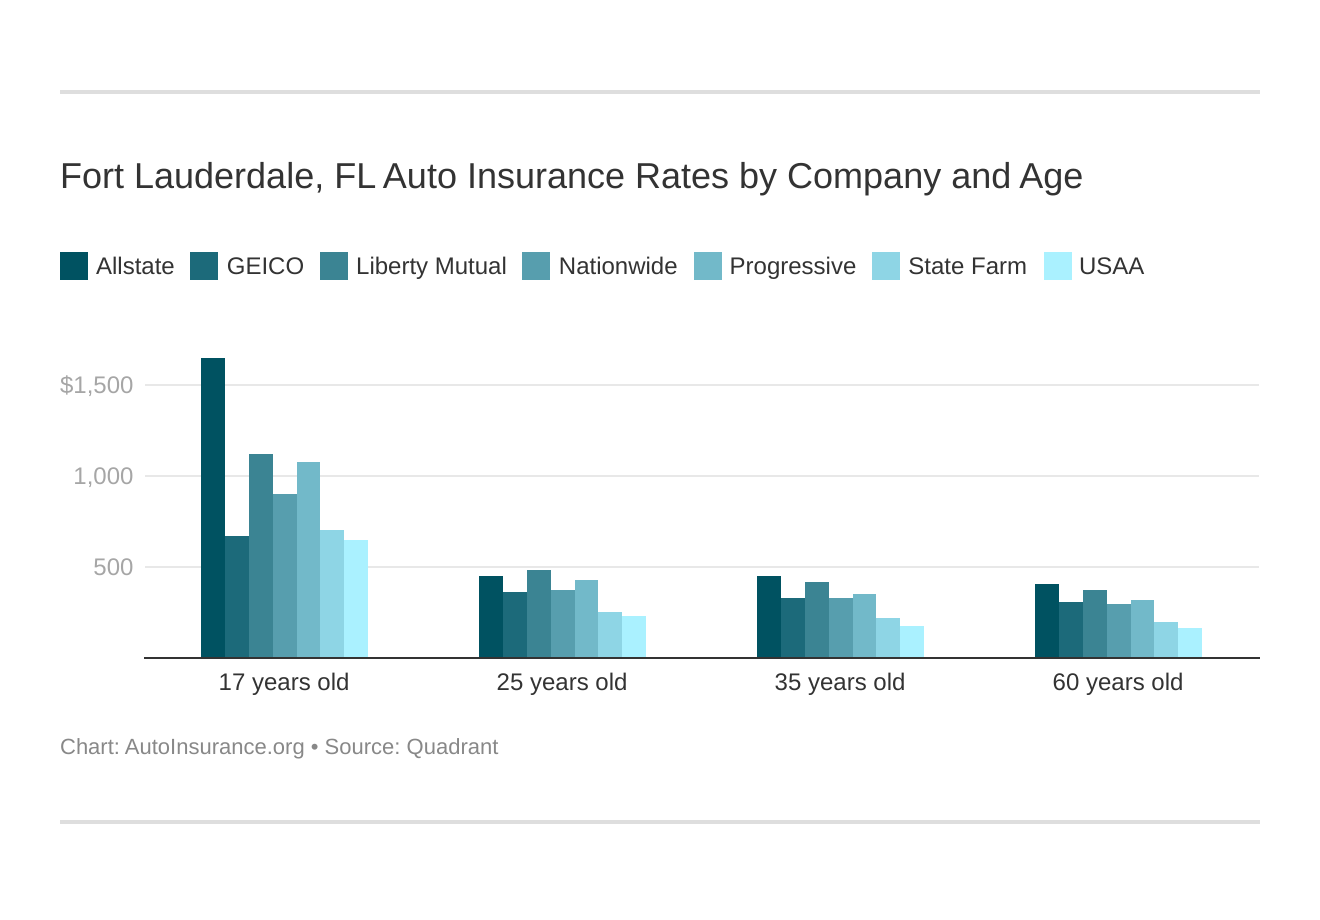 Fort Lauderdale, FL Auto Insurance Rates by Company and Age